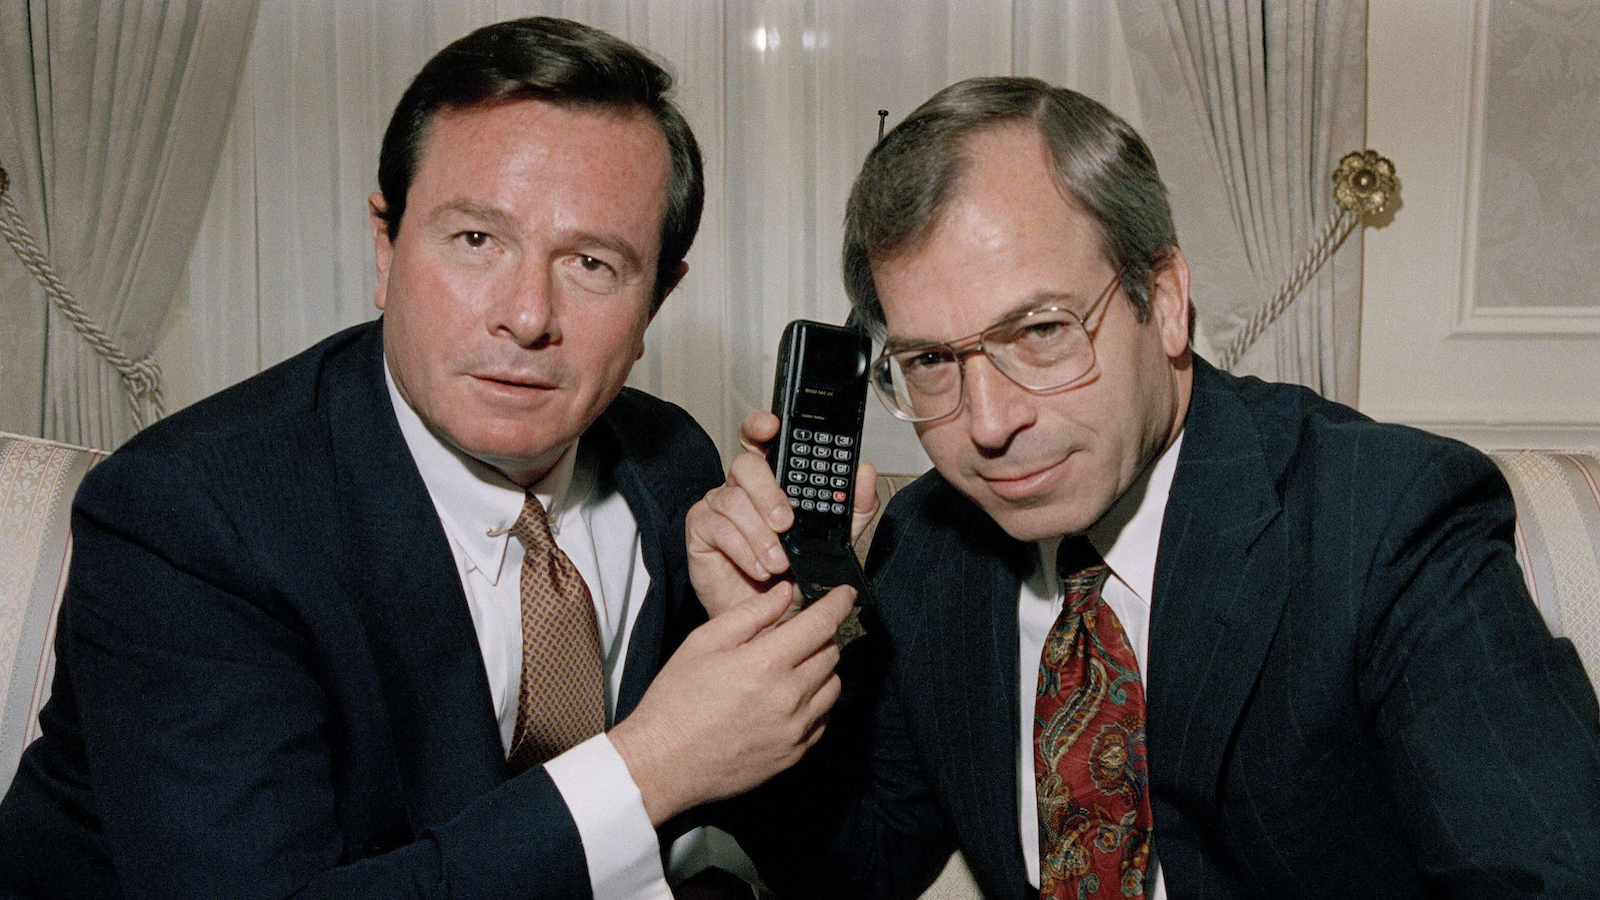 Paul Stern, left, president and CEO of Northern Telecom poses with a phone for photographers, with George Fisher, chairman of the board and CEO of Motorola, Inc. in New York, Feb. 10, 1992. (AP Photo/David Cantor)